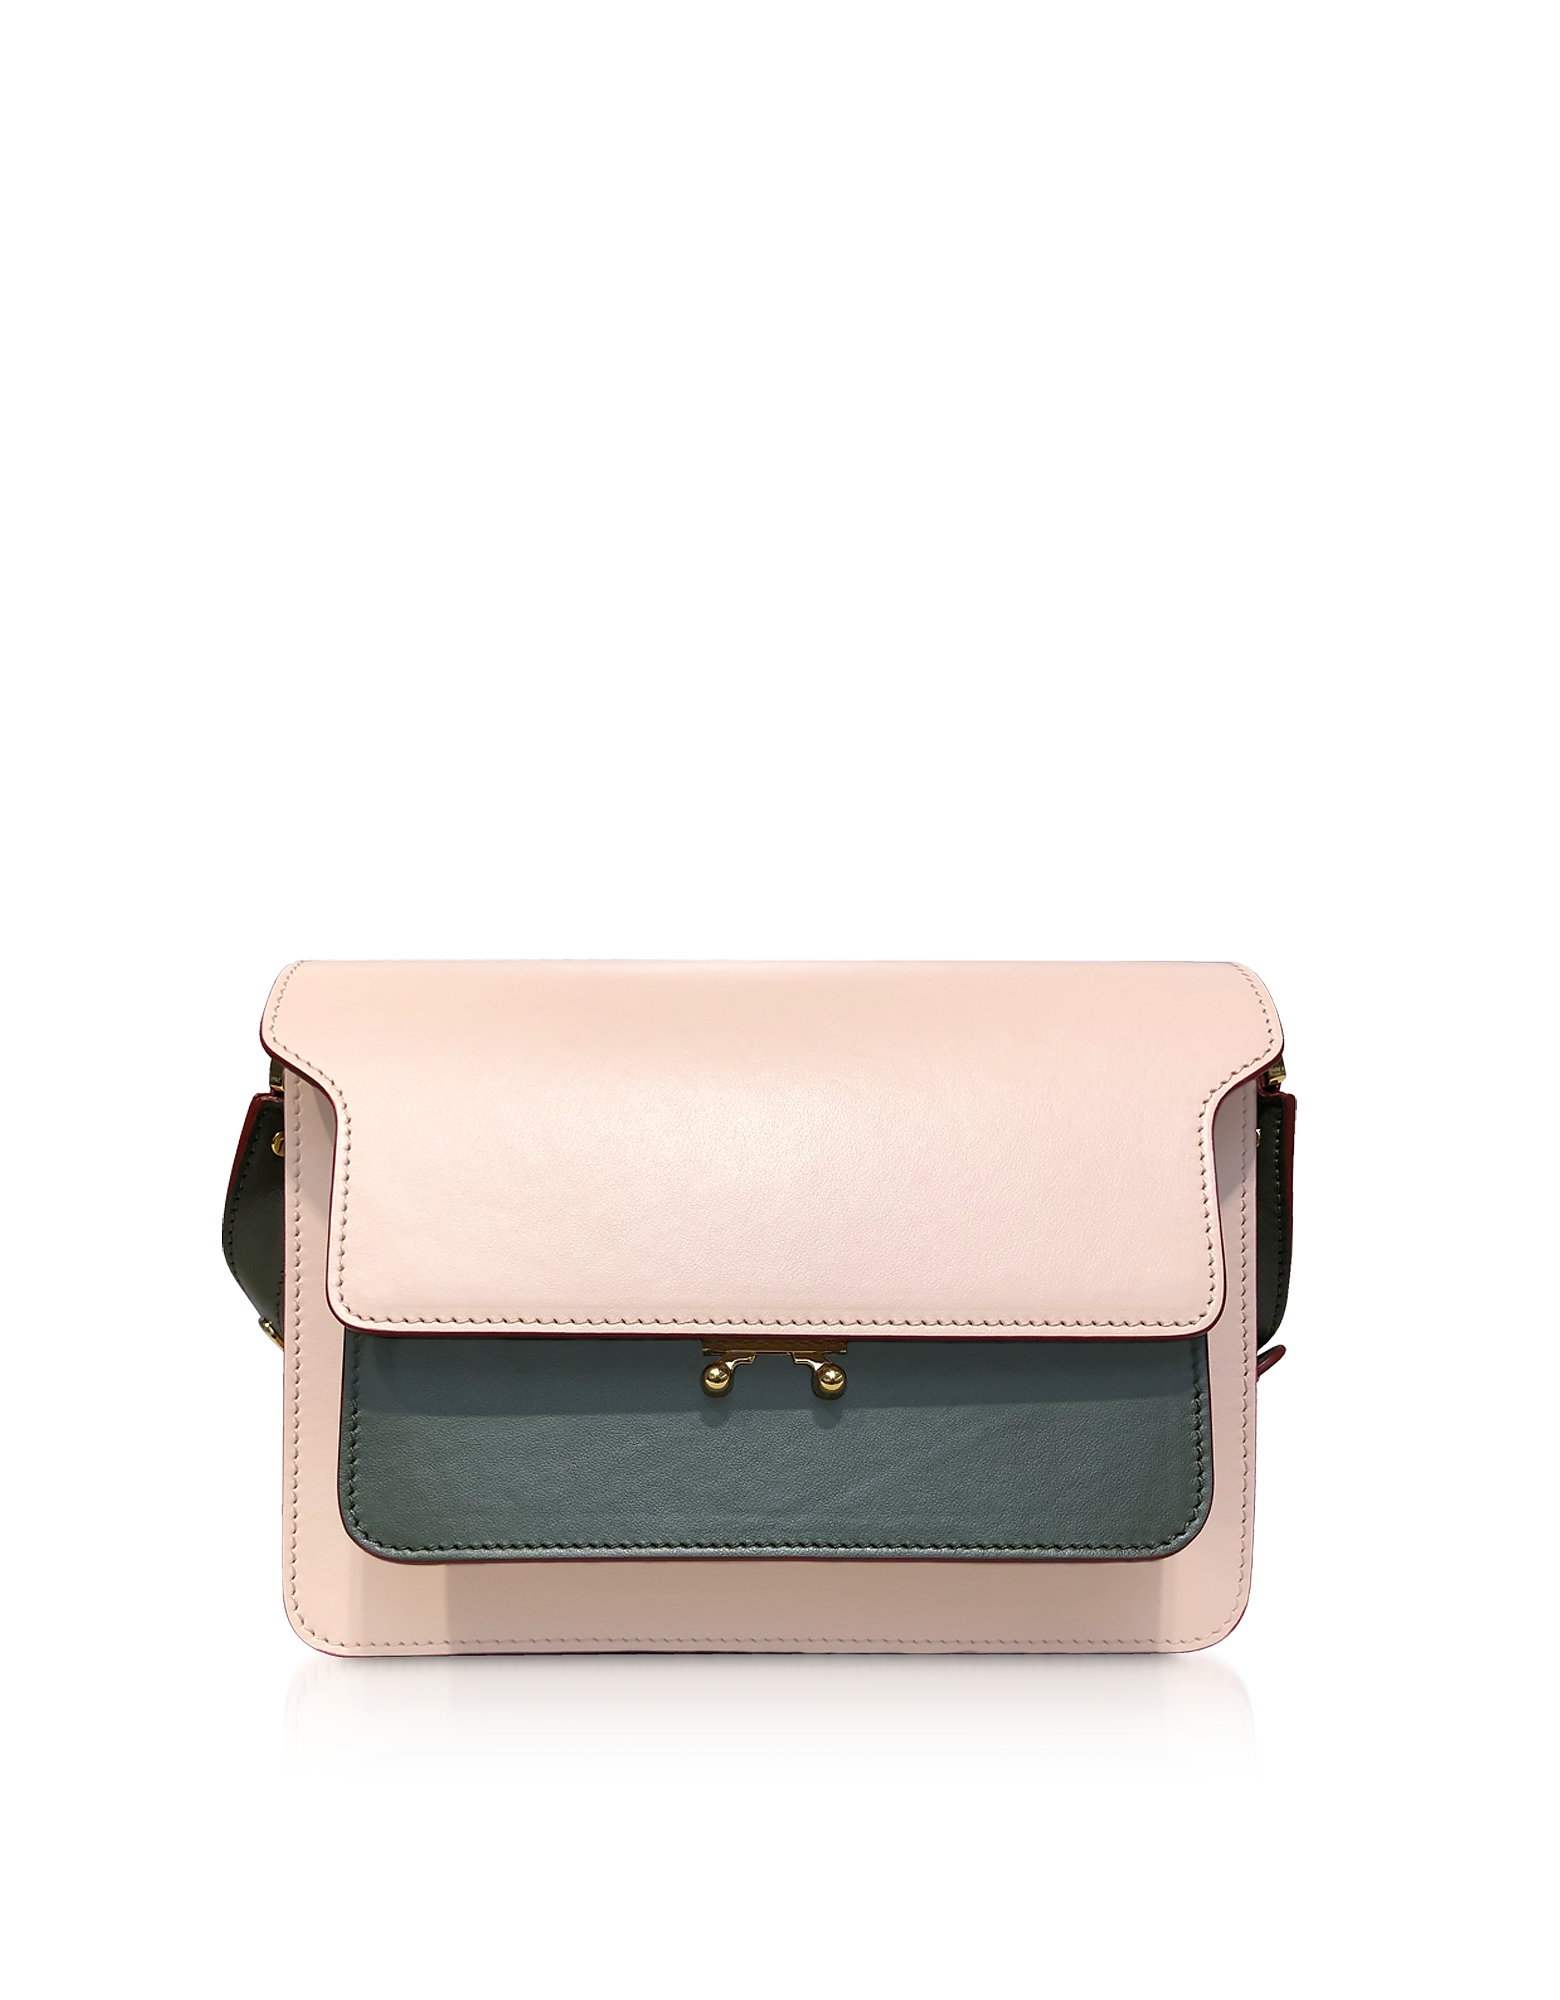 Marni Color Block Leather Mini Trunk Bag In Antique Pink